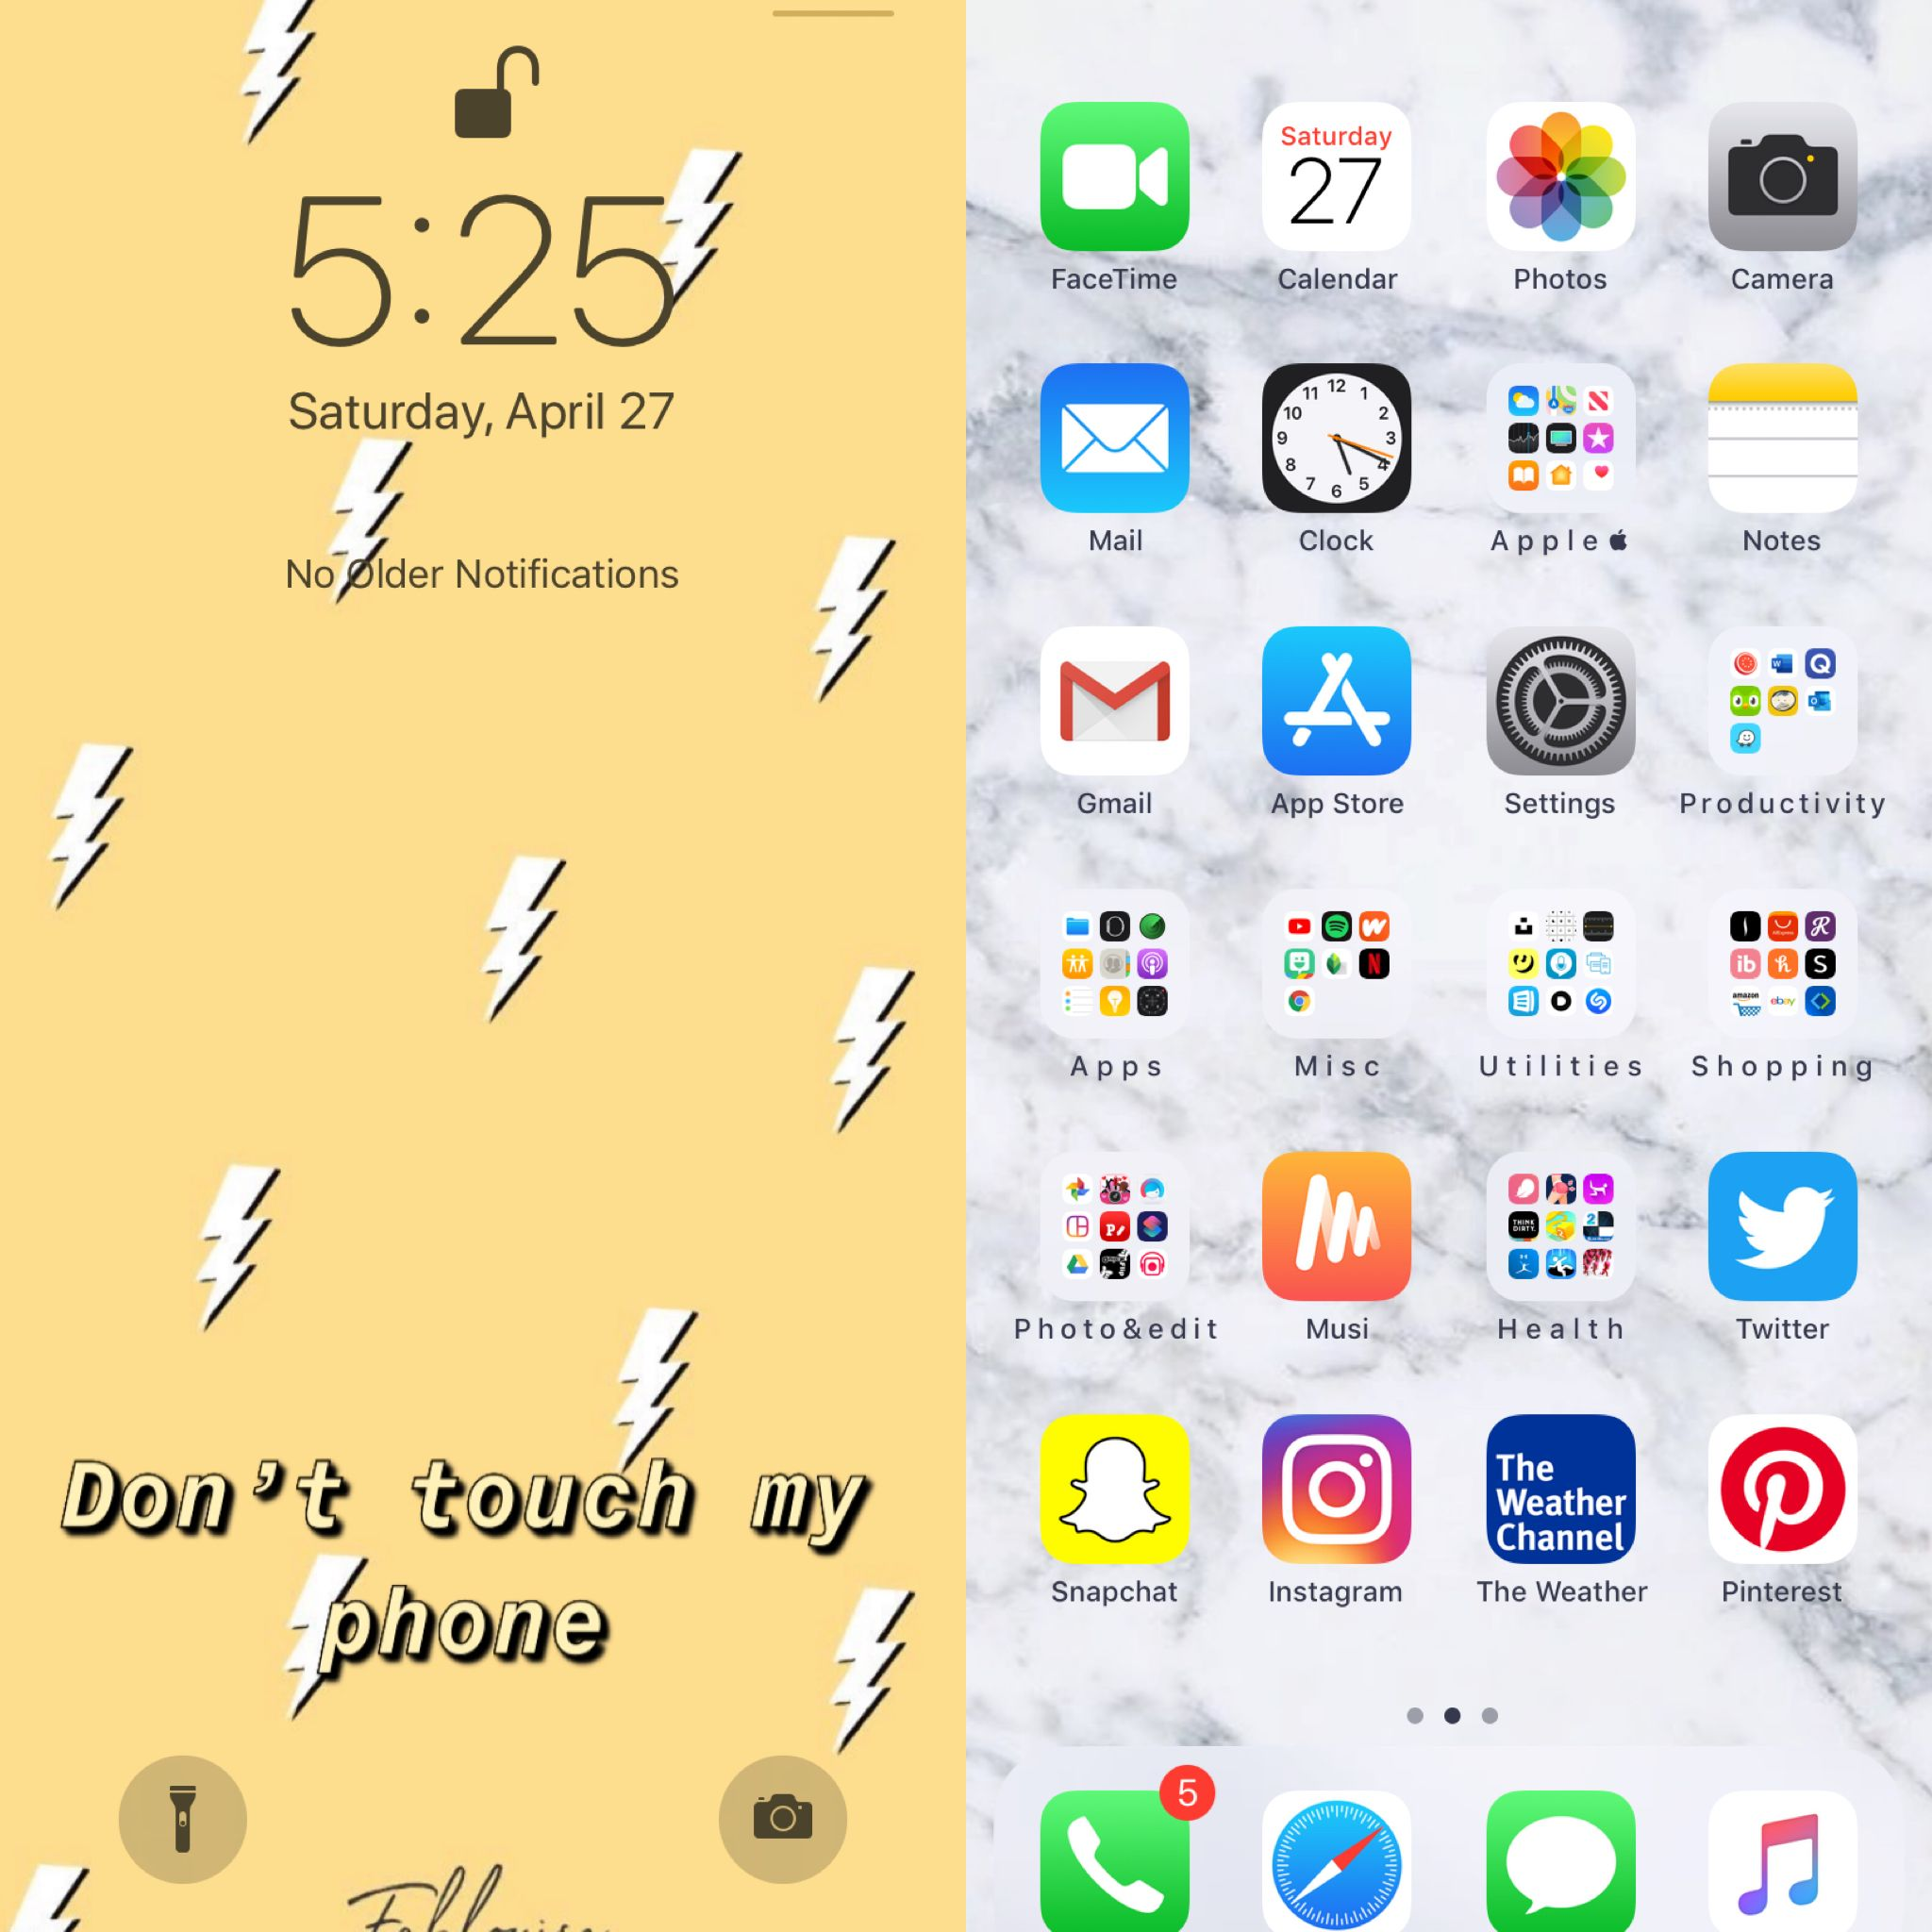 Pin By Samantha Leigh On M Y I P H O N E S E T U P S Organize Phone Apps Iphone App Layout Phone Apps Iphone